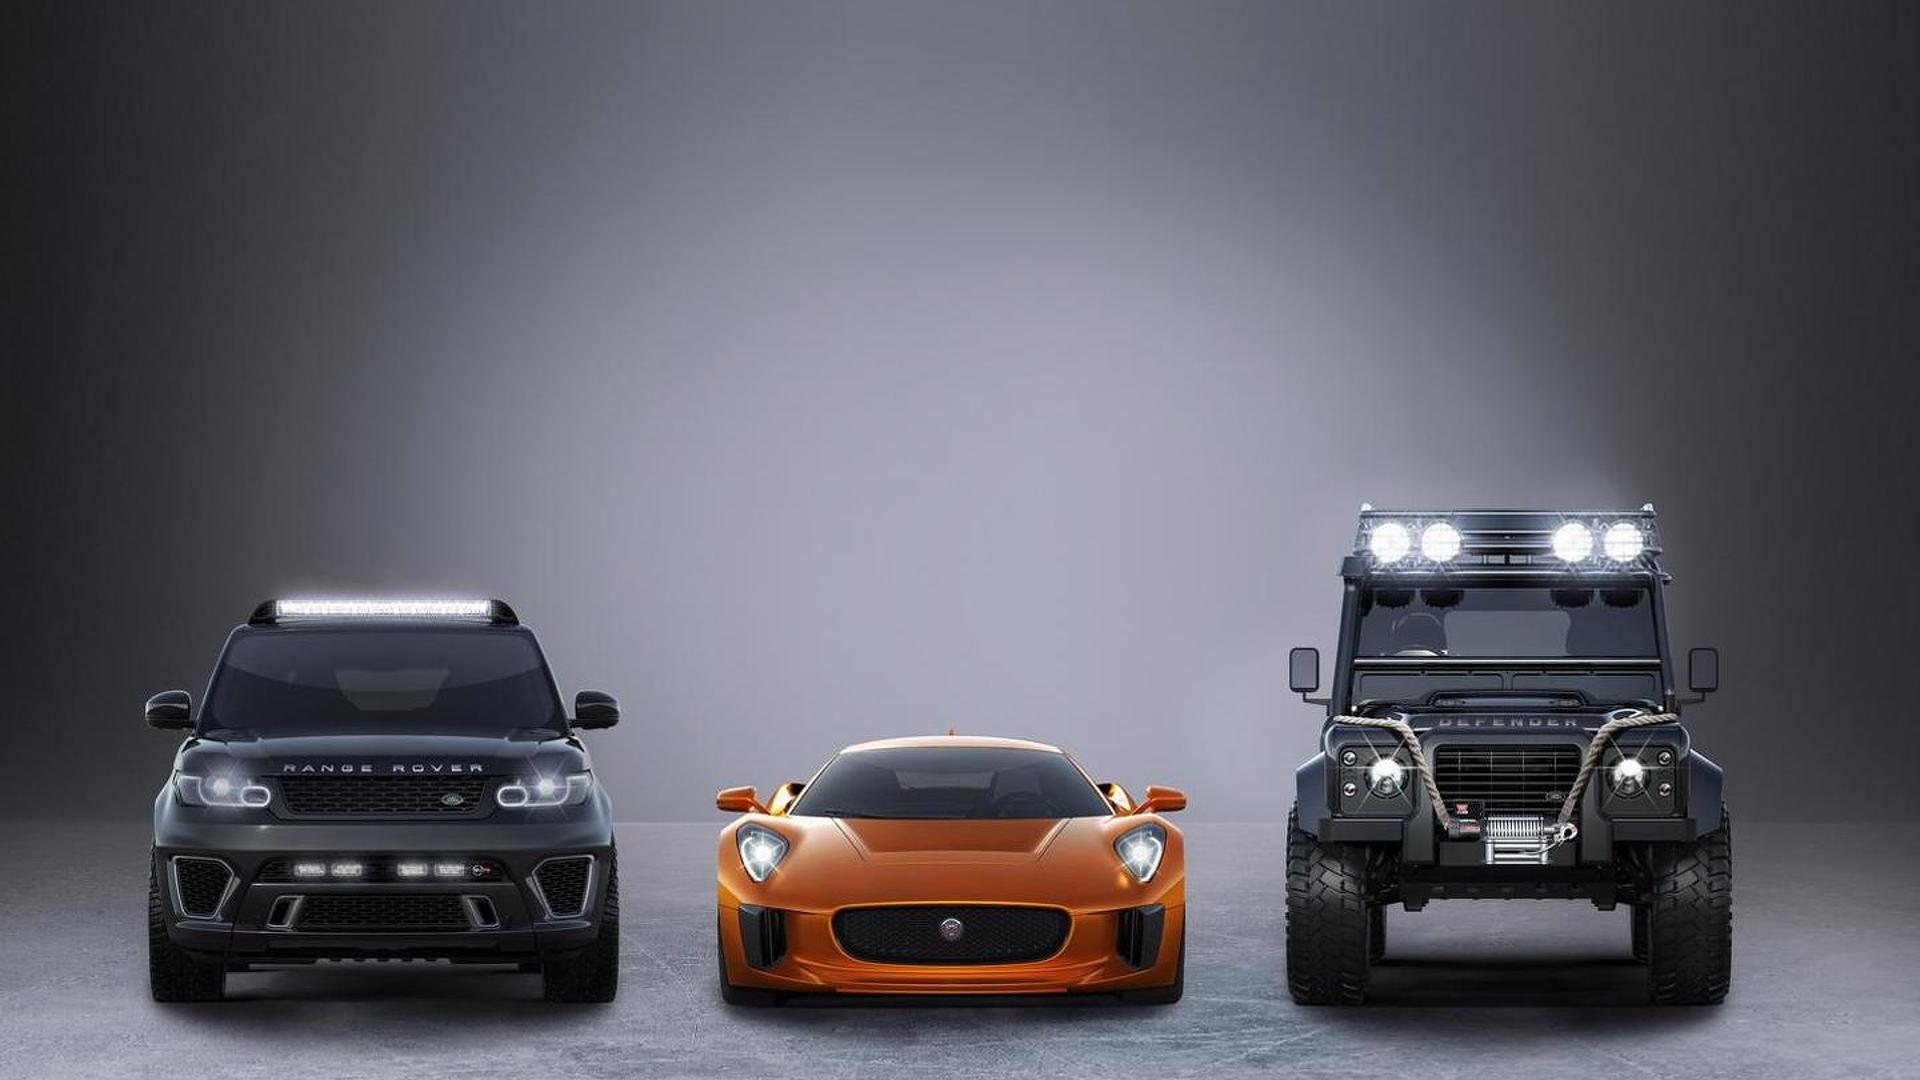 Jaguar C-X75, Range Rover Sport SVR and Land Rover Defender Big Foot starring in SPECTRE